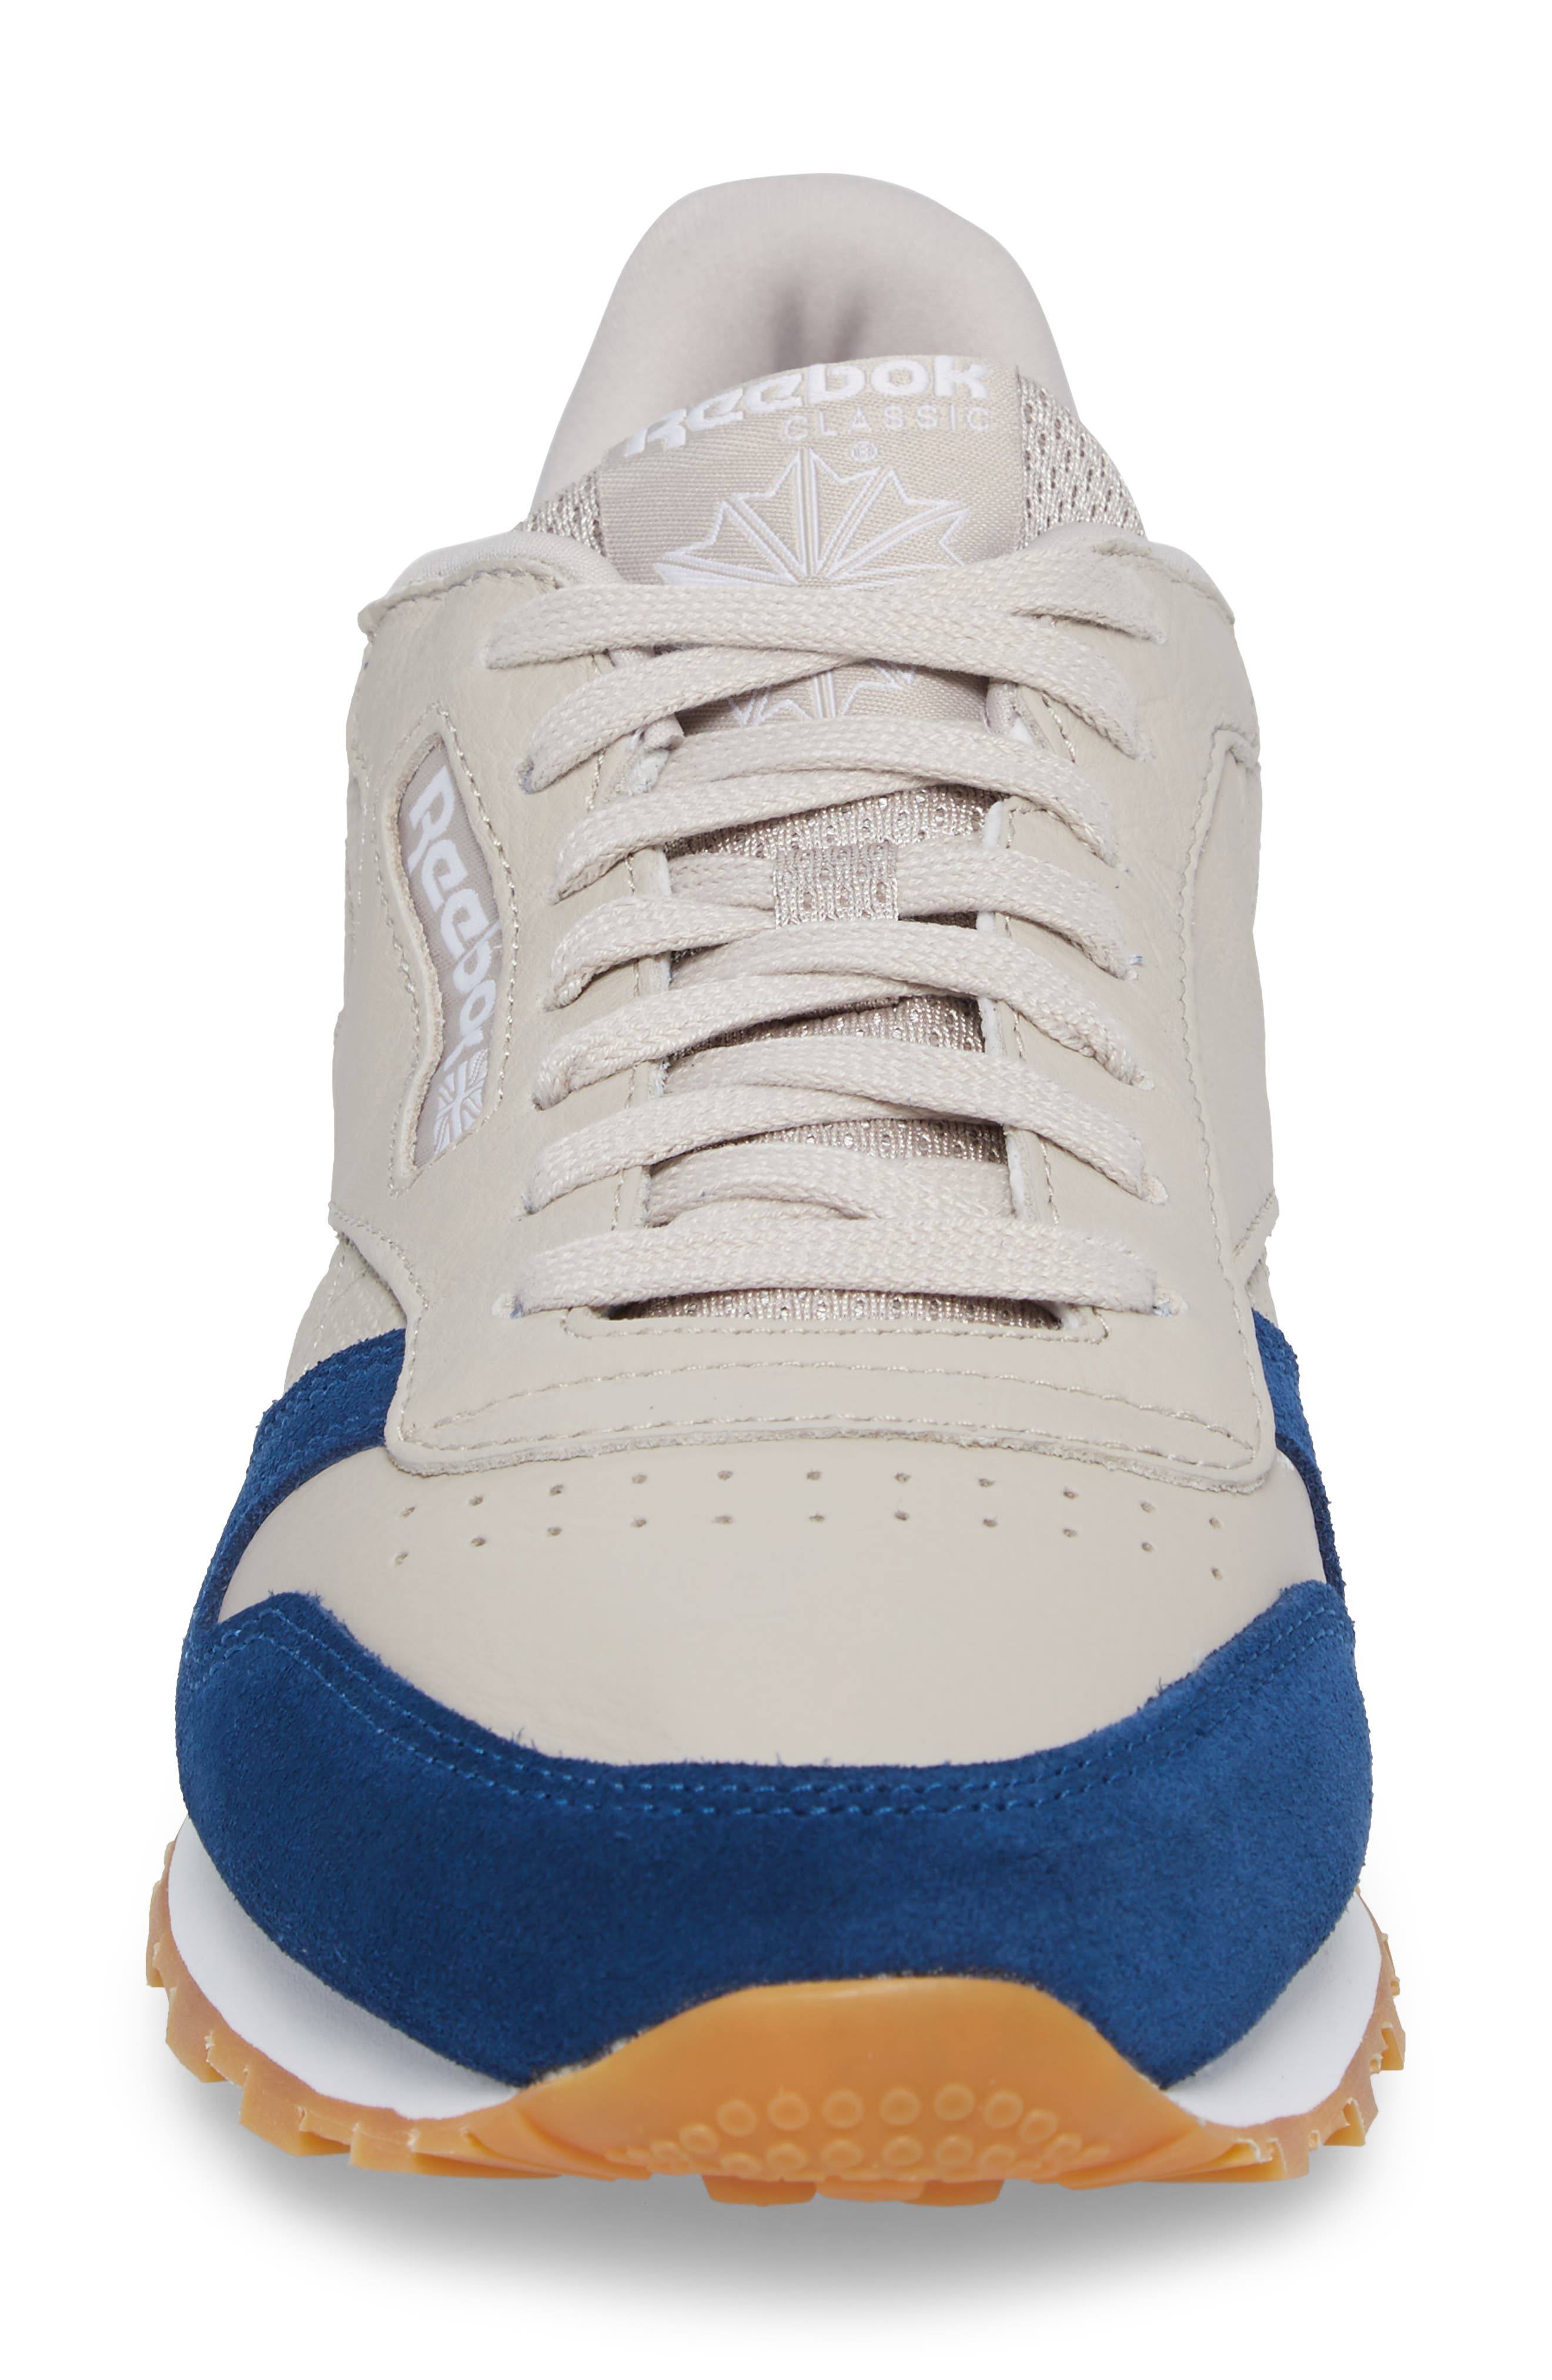 Classic Leather GI Sneaker,                             Alternate thumbnail 4, color,                             Sand Stone/ Washed Blue/ White